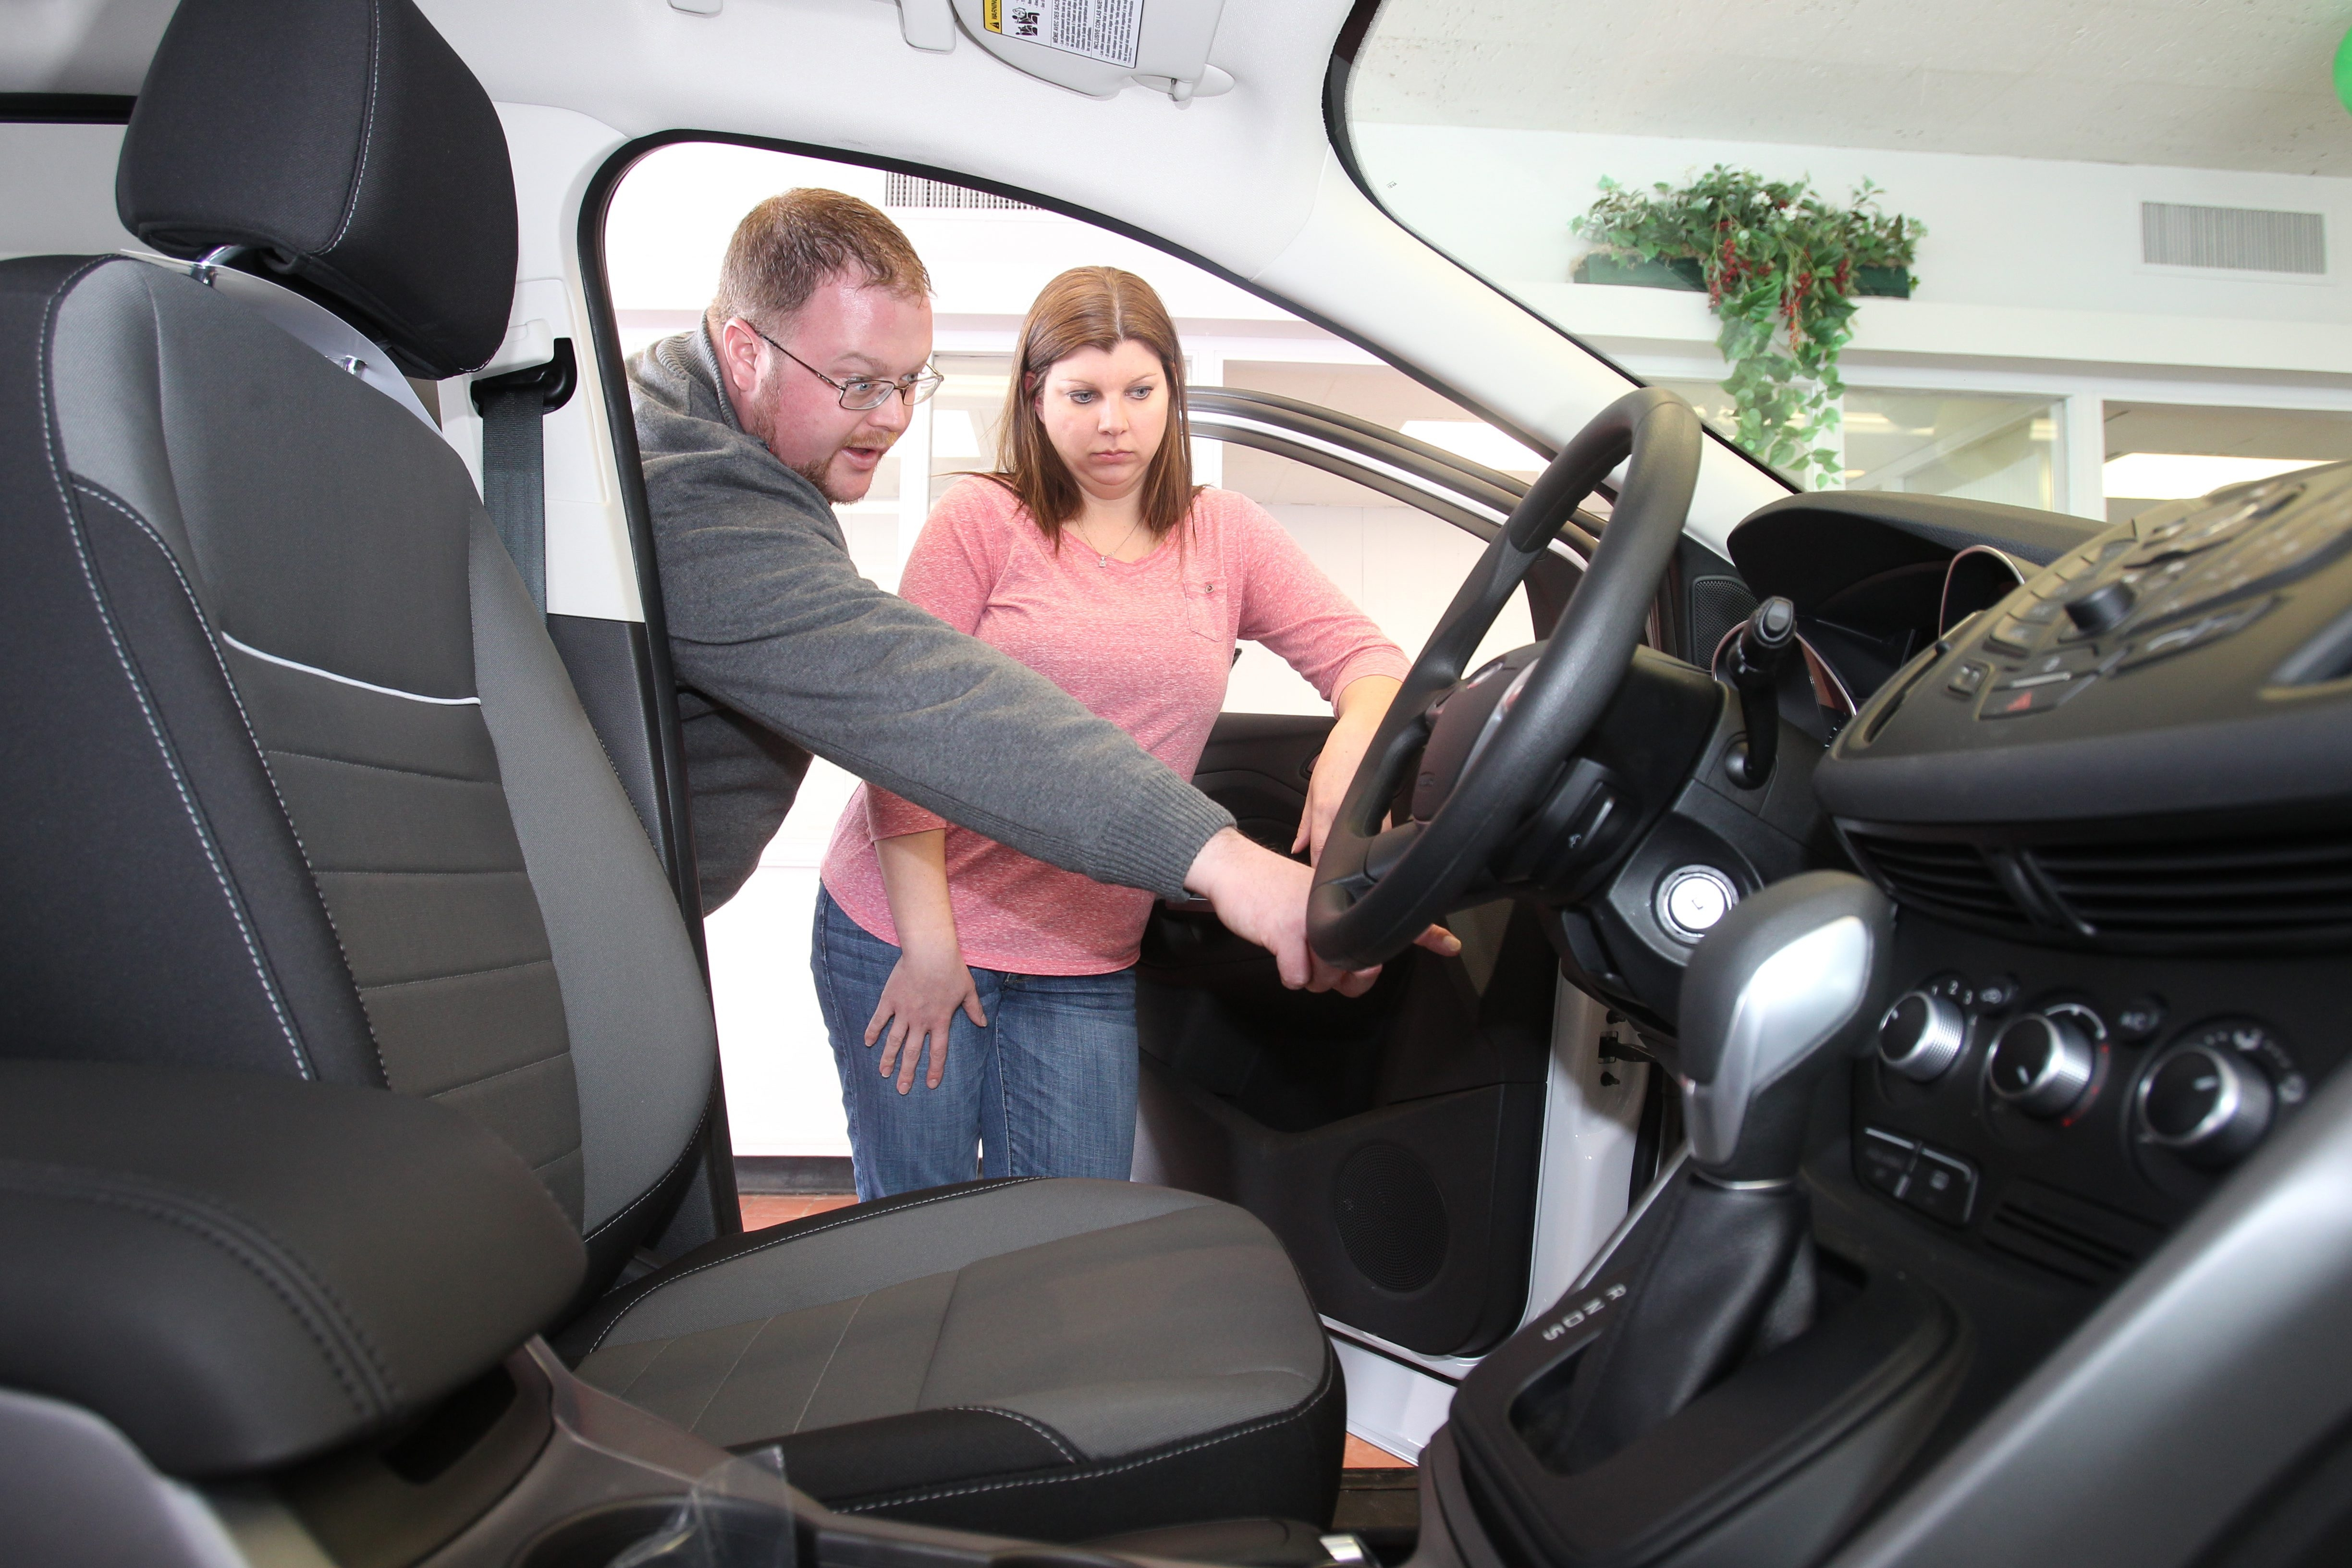 Derek Young, a Ford Certified representative, shows Meghan Sherriff of Lewiston some of the features on a 2014 Ford Escape at Steve Baldo Ford in Niagara Falls.  (John Hickey/Buffalo News)